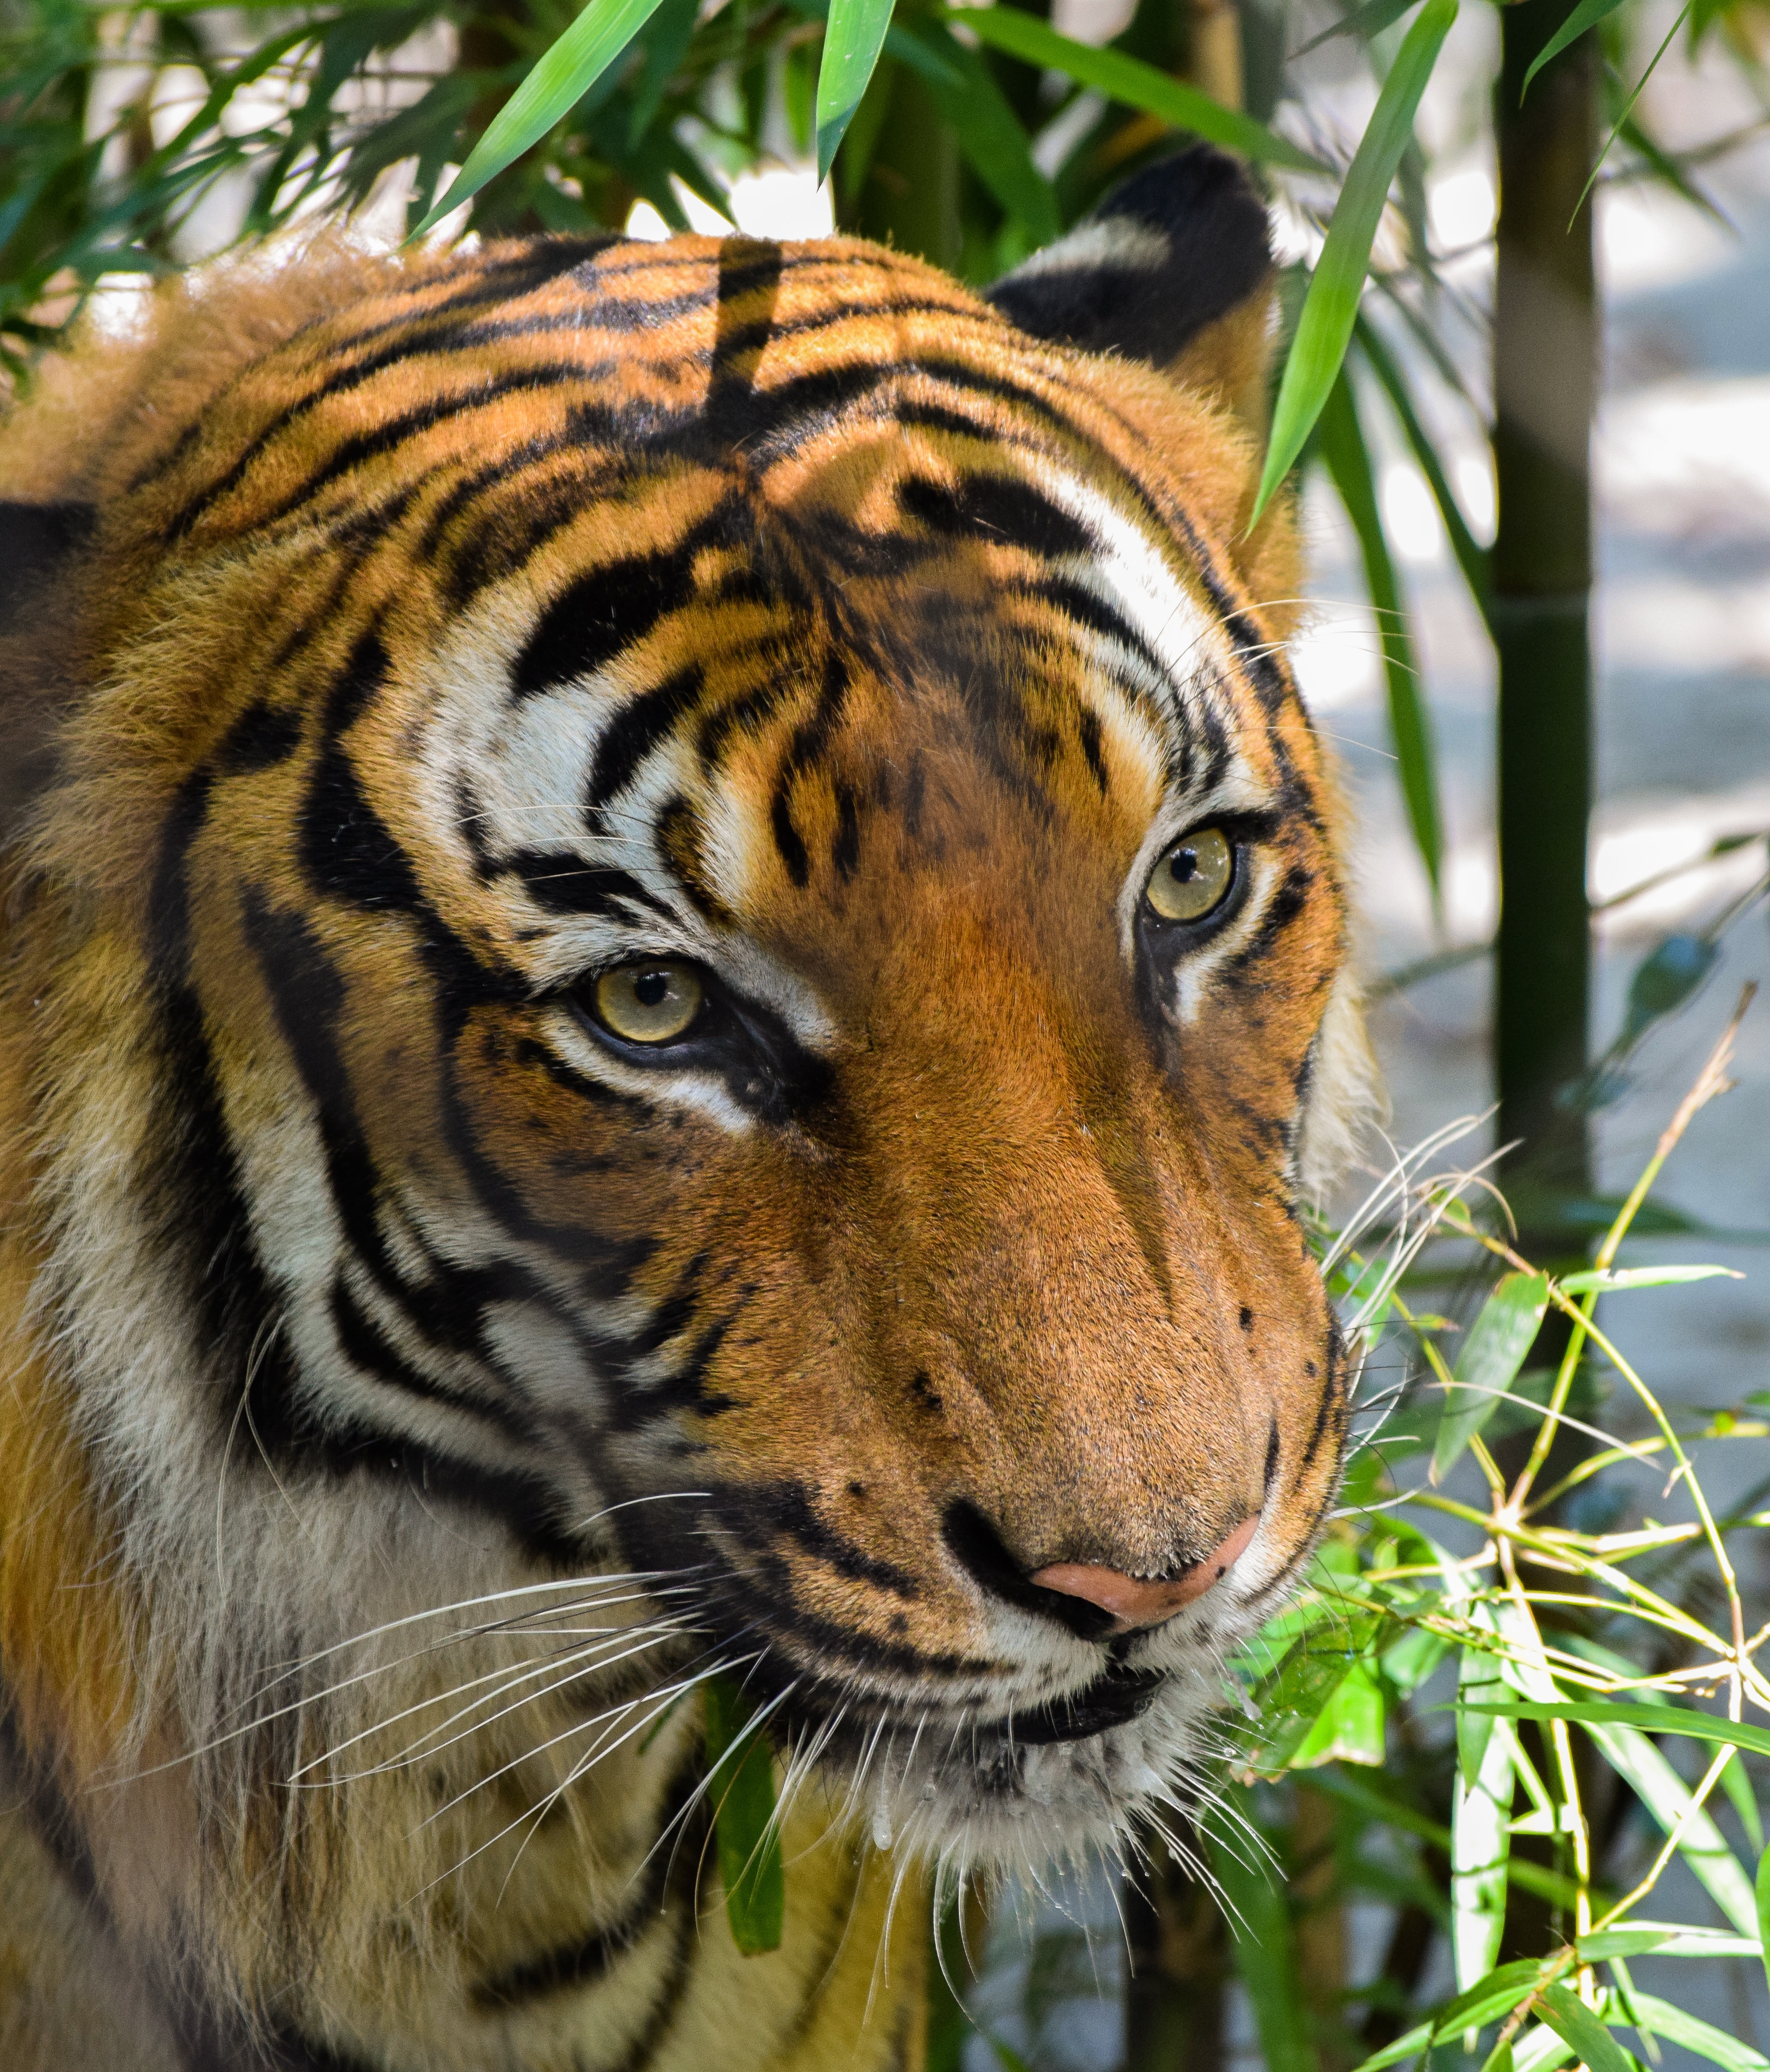 Close up shot of beautiful tiger face with bamboo tree leaves